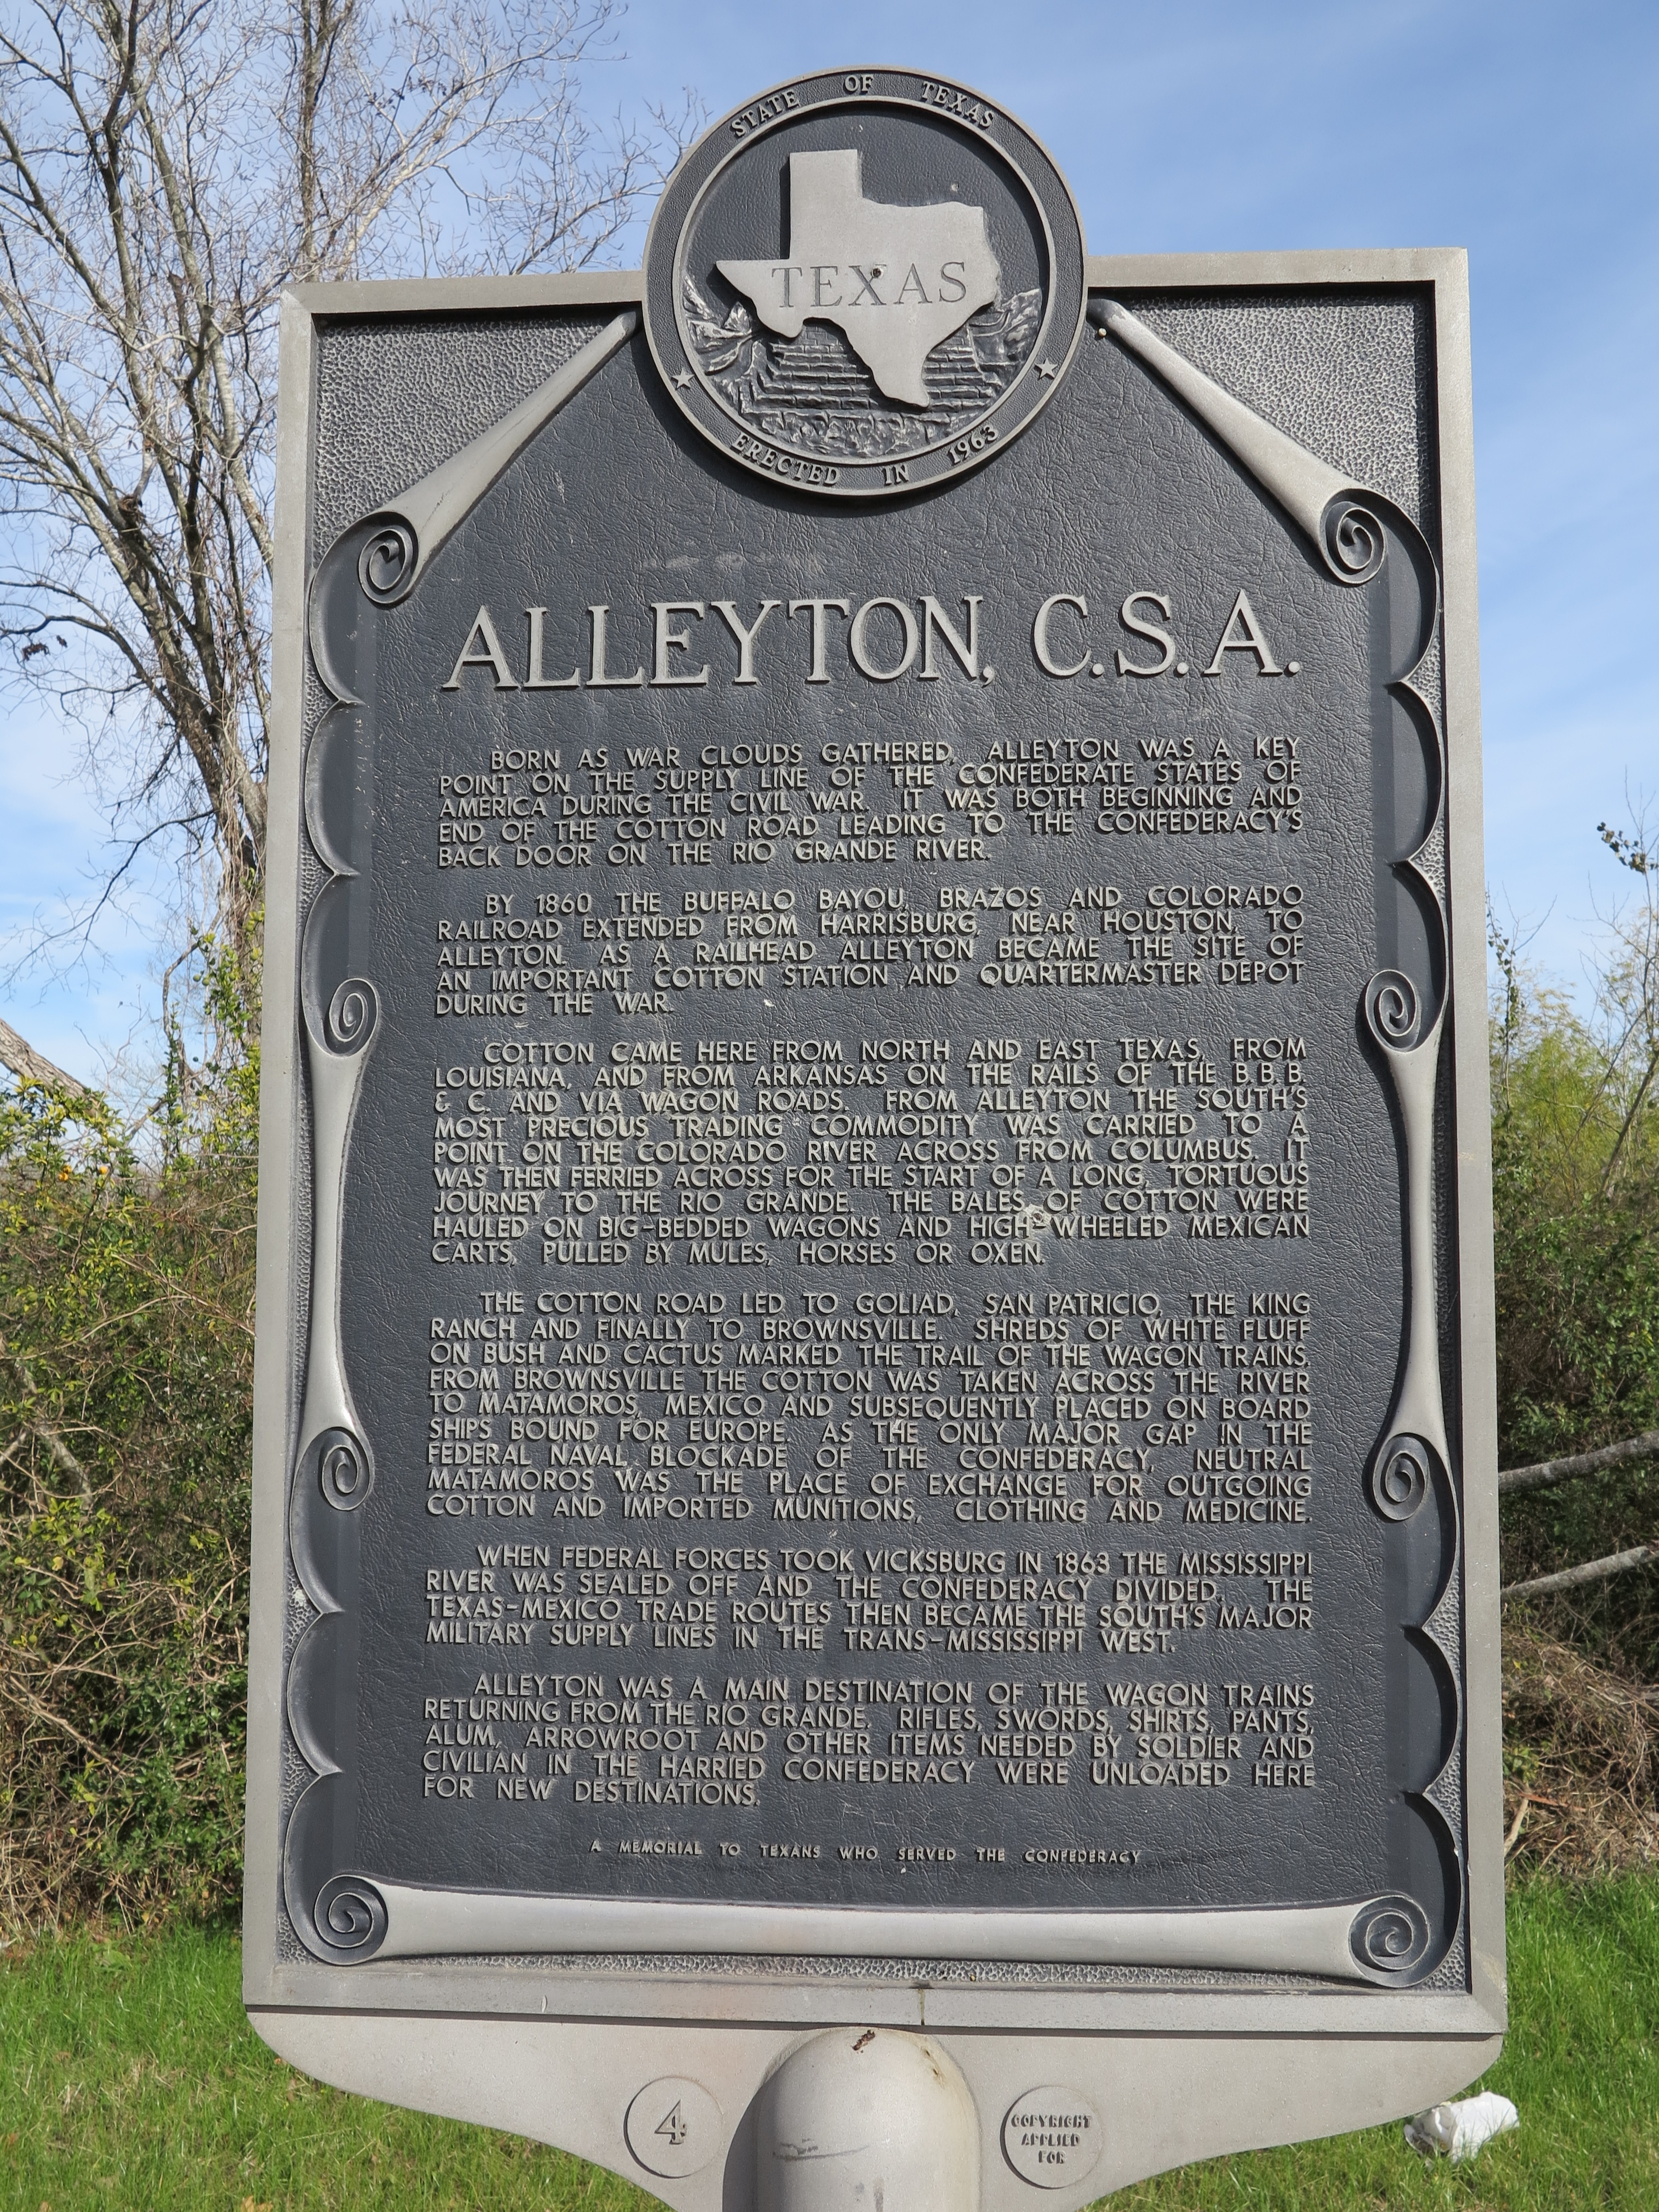 Additional close-up of whole Alleyton C.S.A. Marker